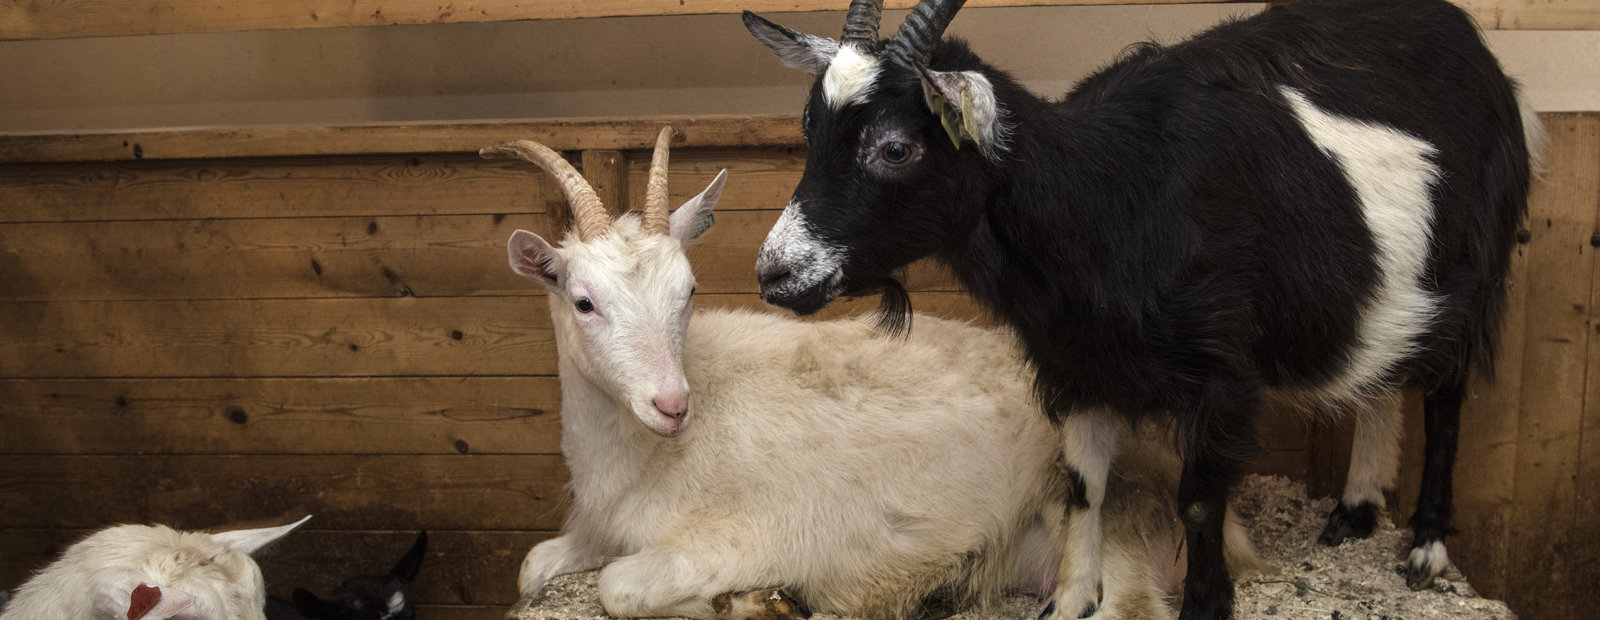 Two goats in the barn at Maihaugen.